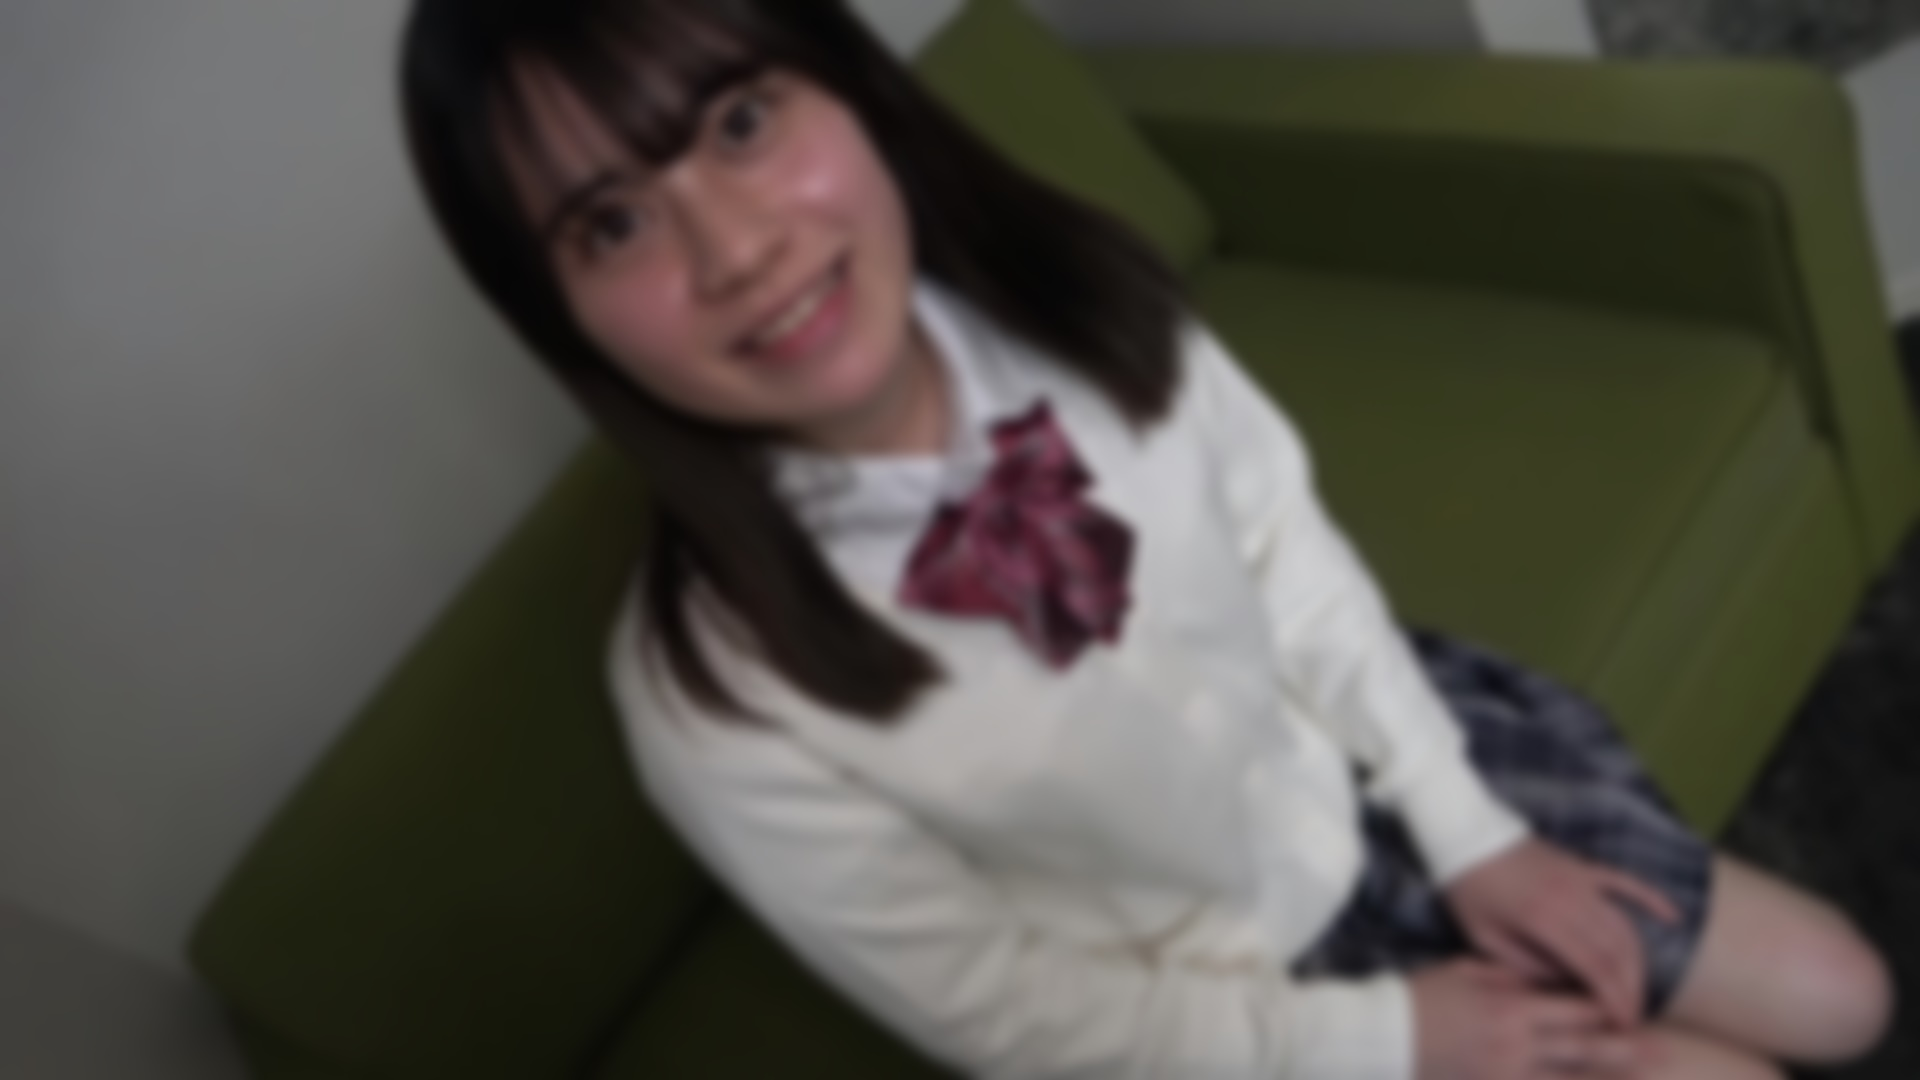 FC2 PPV 2341477 Idol-class beautiful girl bombing. Please do not spread it as a request. FC2-PPV-2341477